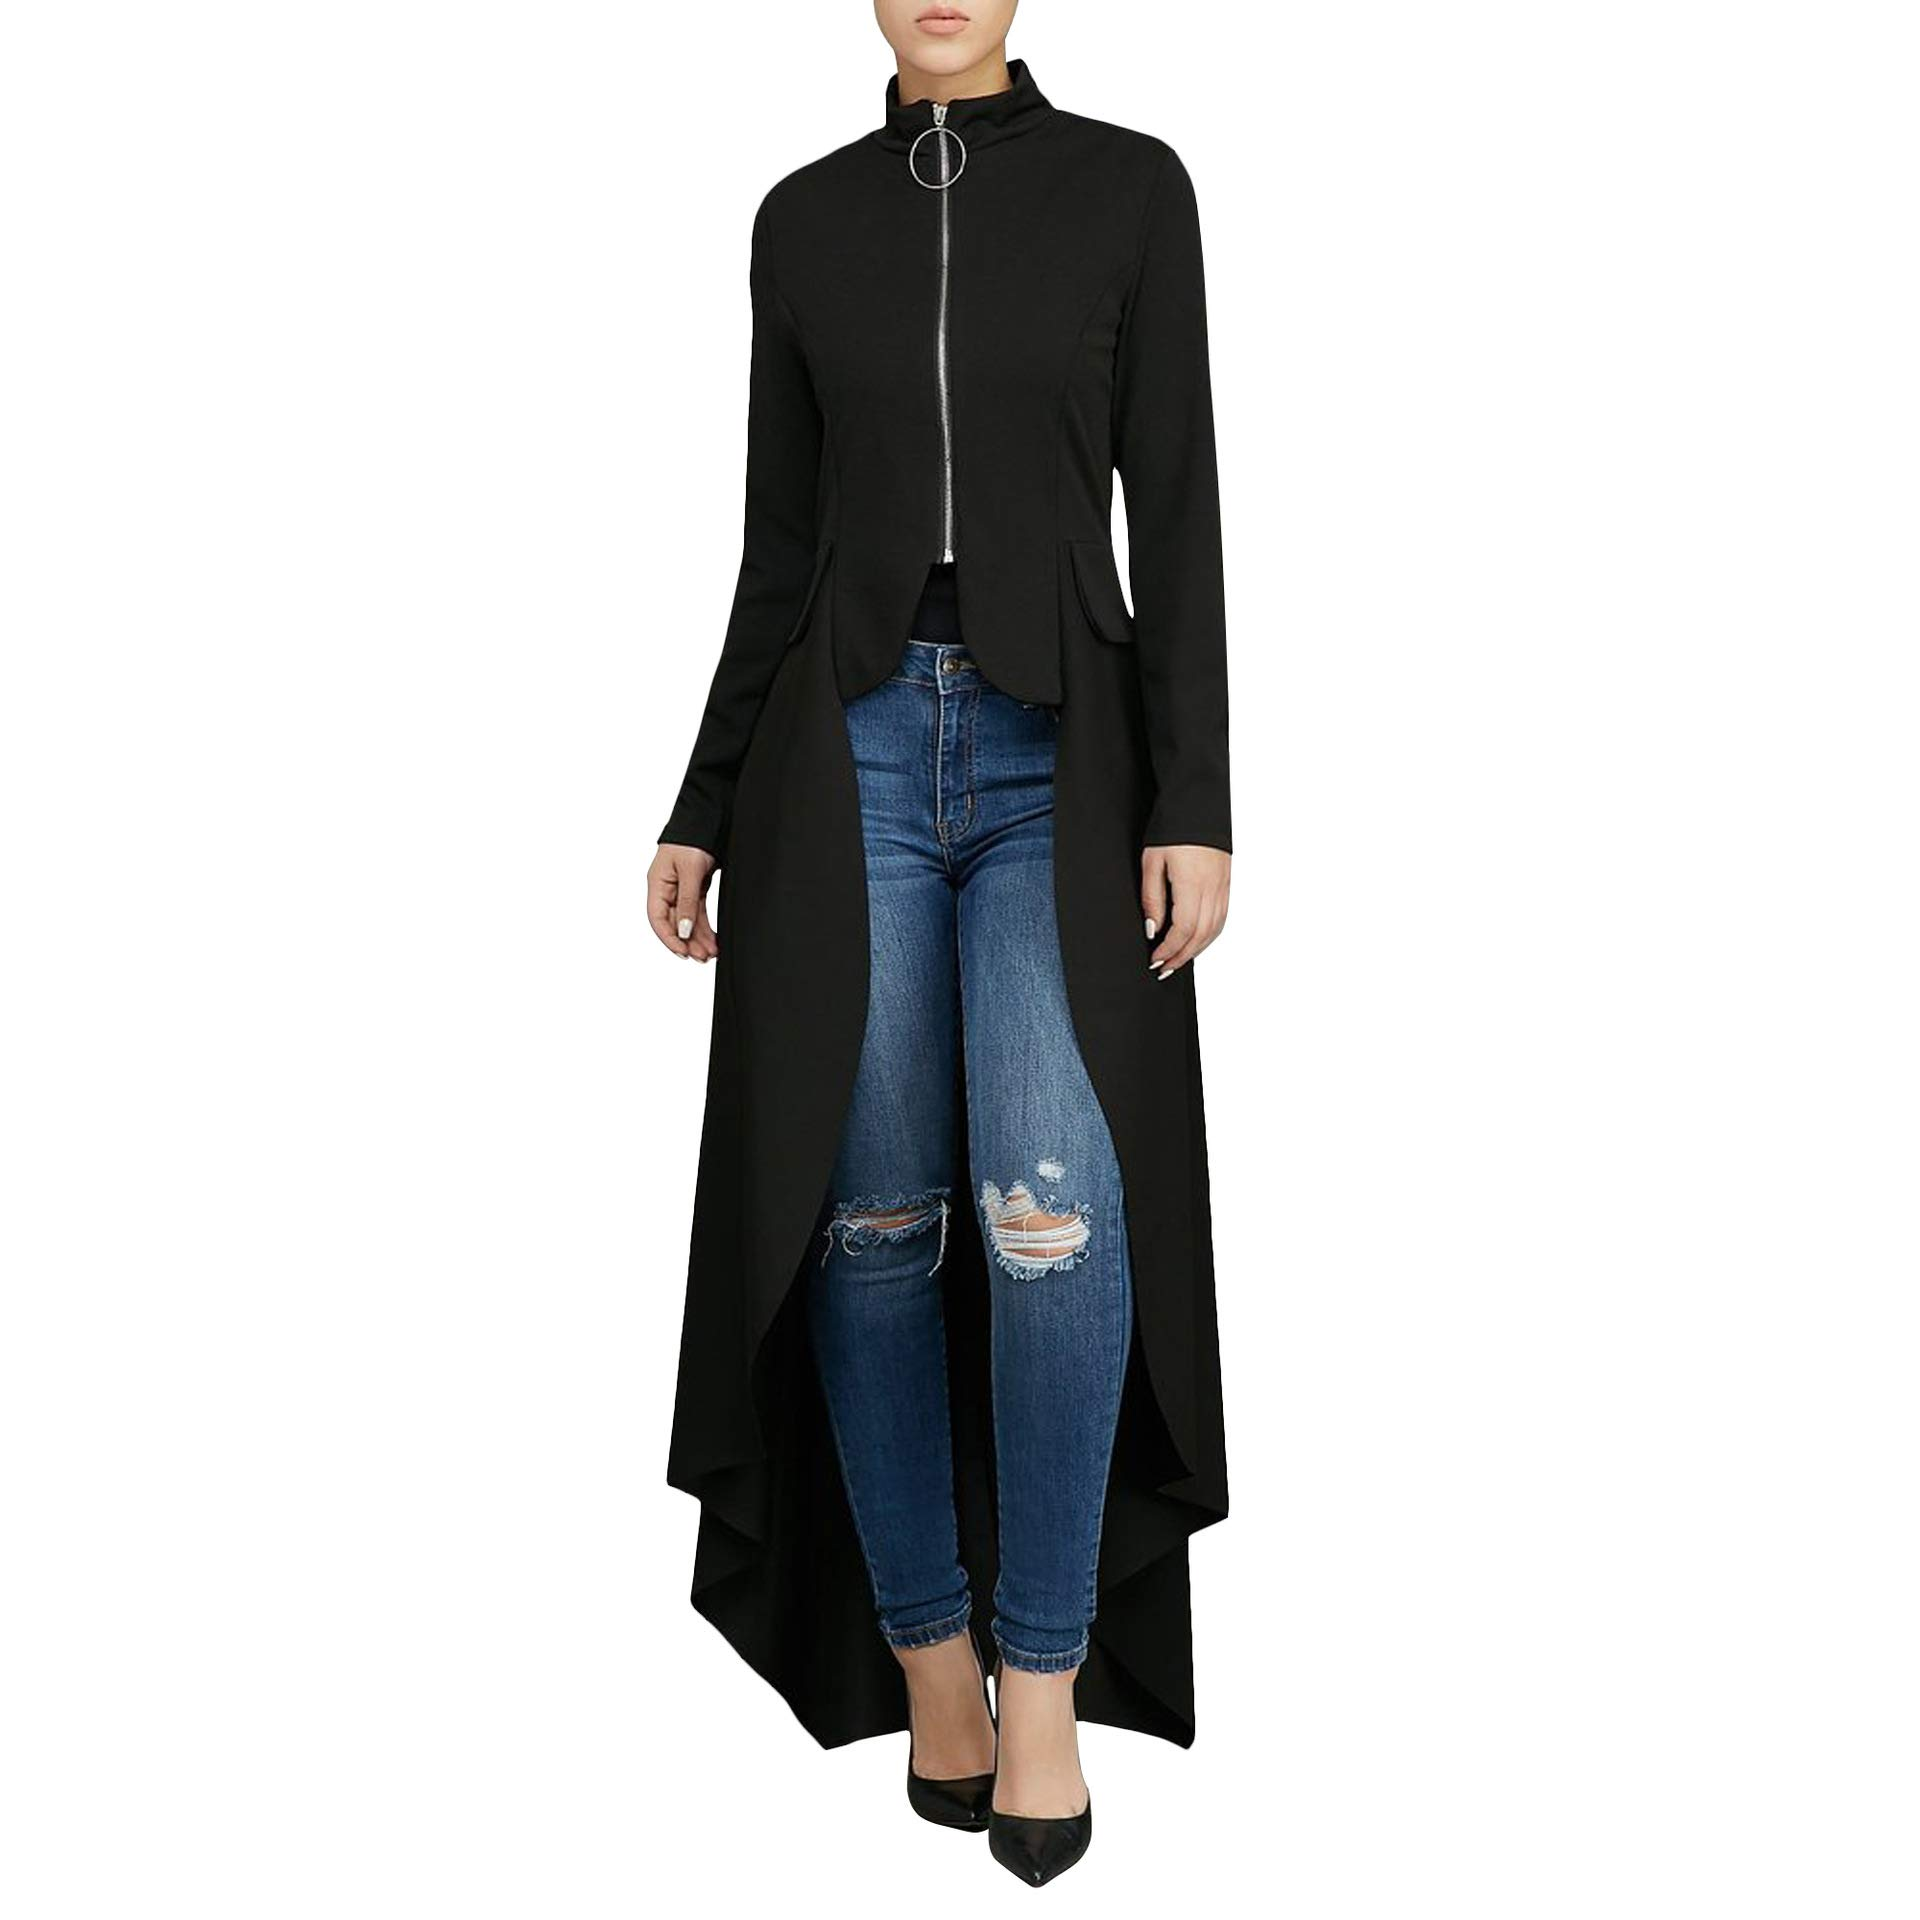 Women Long Dovetail Gothic Trench Coat Front Zipper Up Tailcoat Jacket